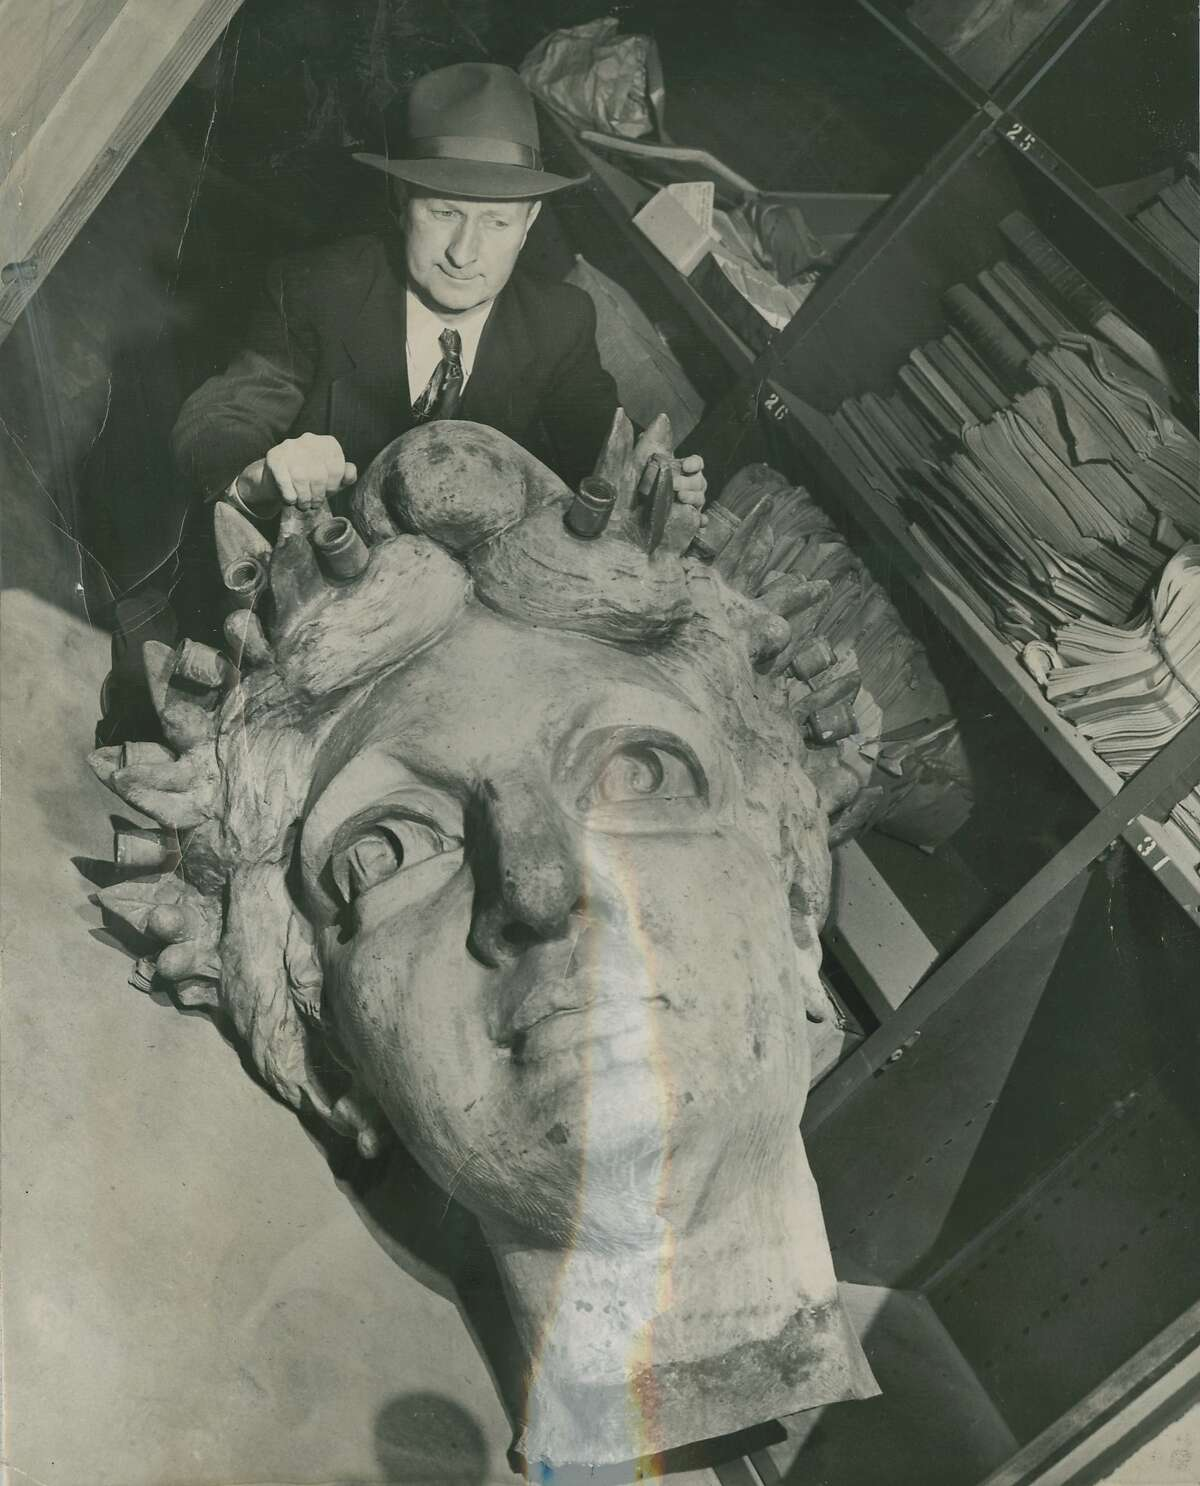 Historic views of old and new San Francisco City Hall. William Irvine with the head of the Goddess of Progress, which stood atop the old San Francisco City Hall, March 28, 1949.